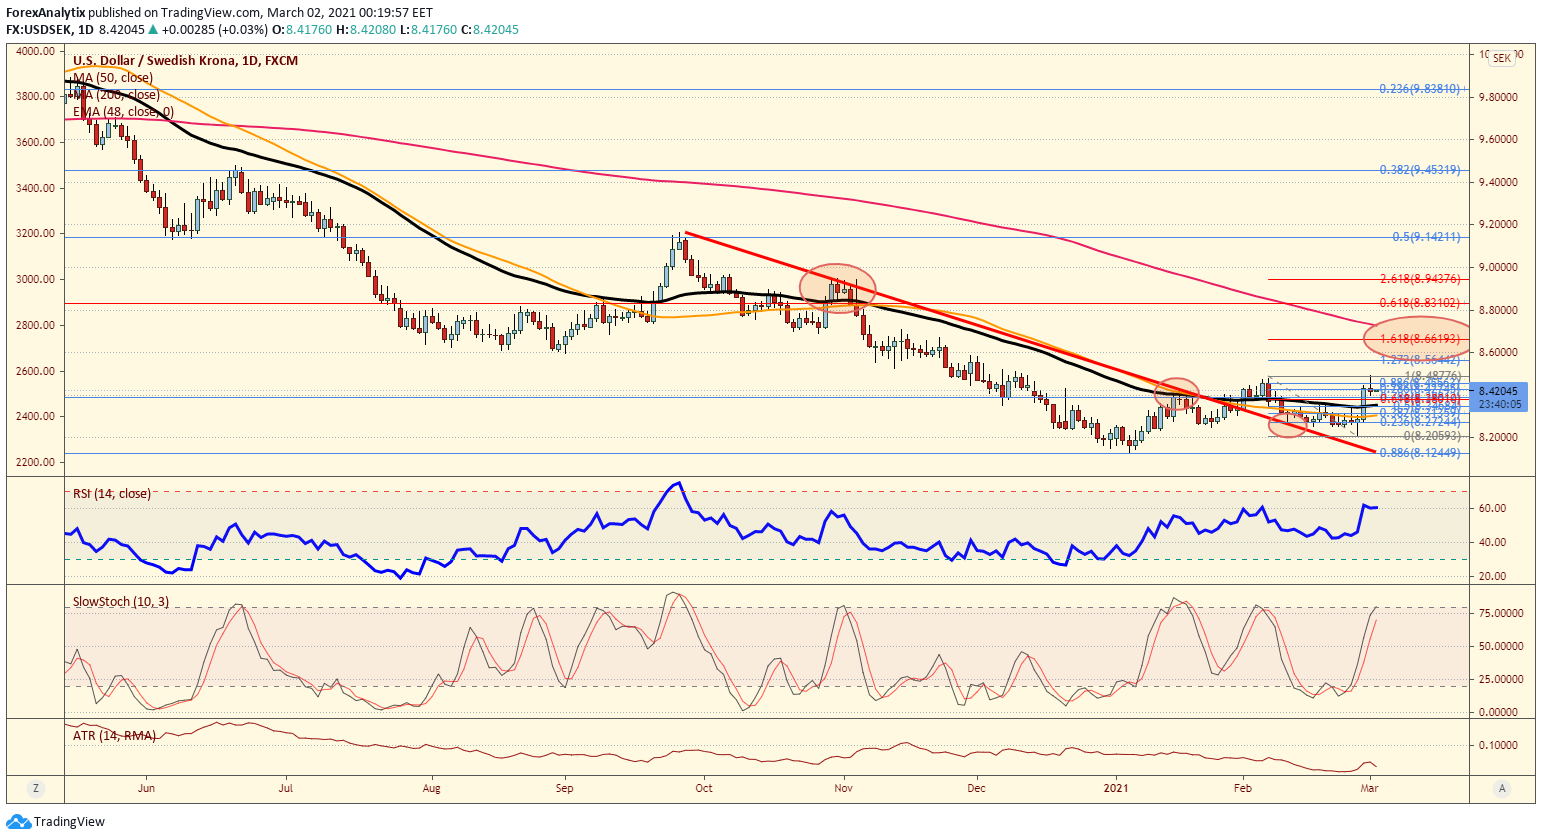 Chart Of The Day: USD/SEK